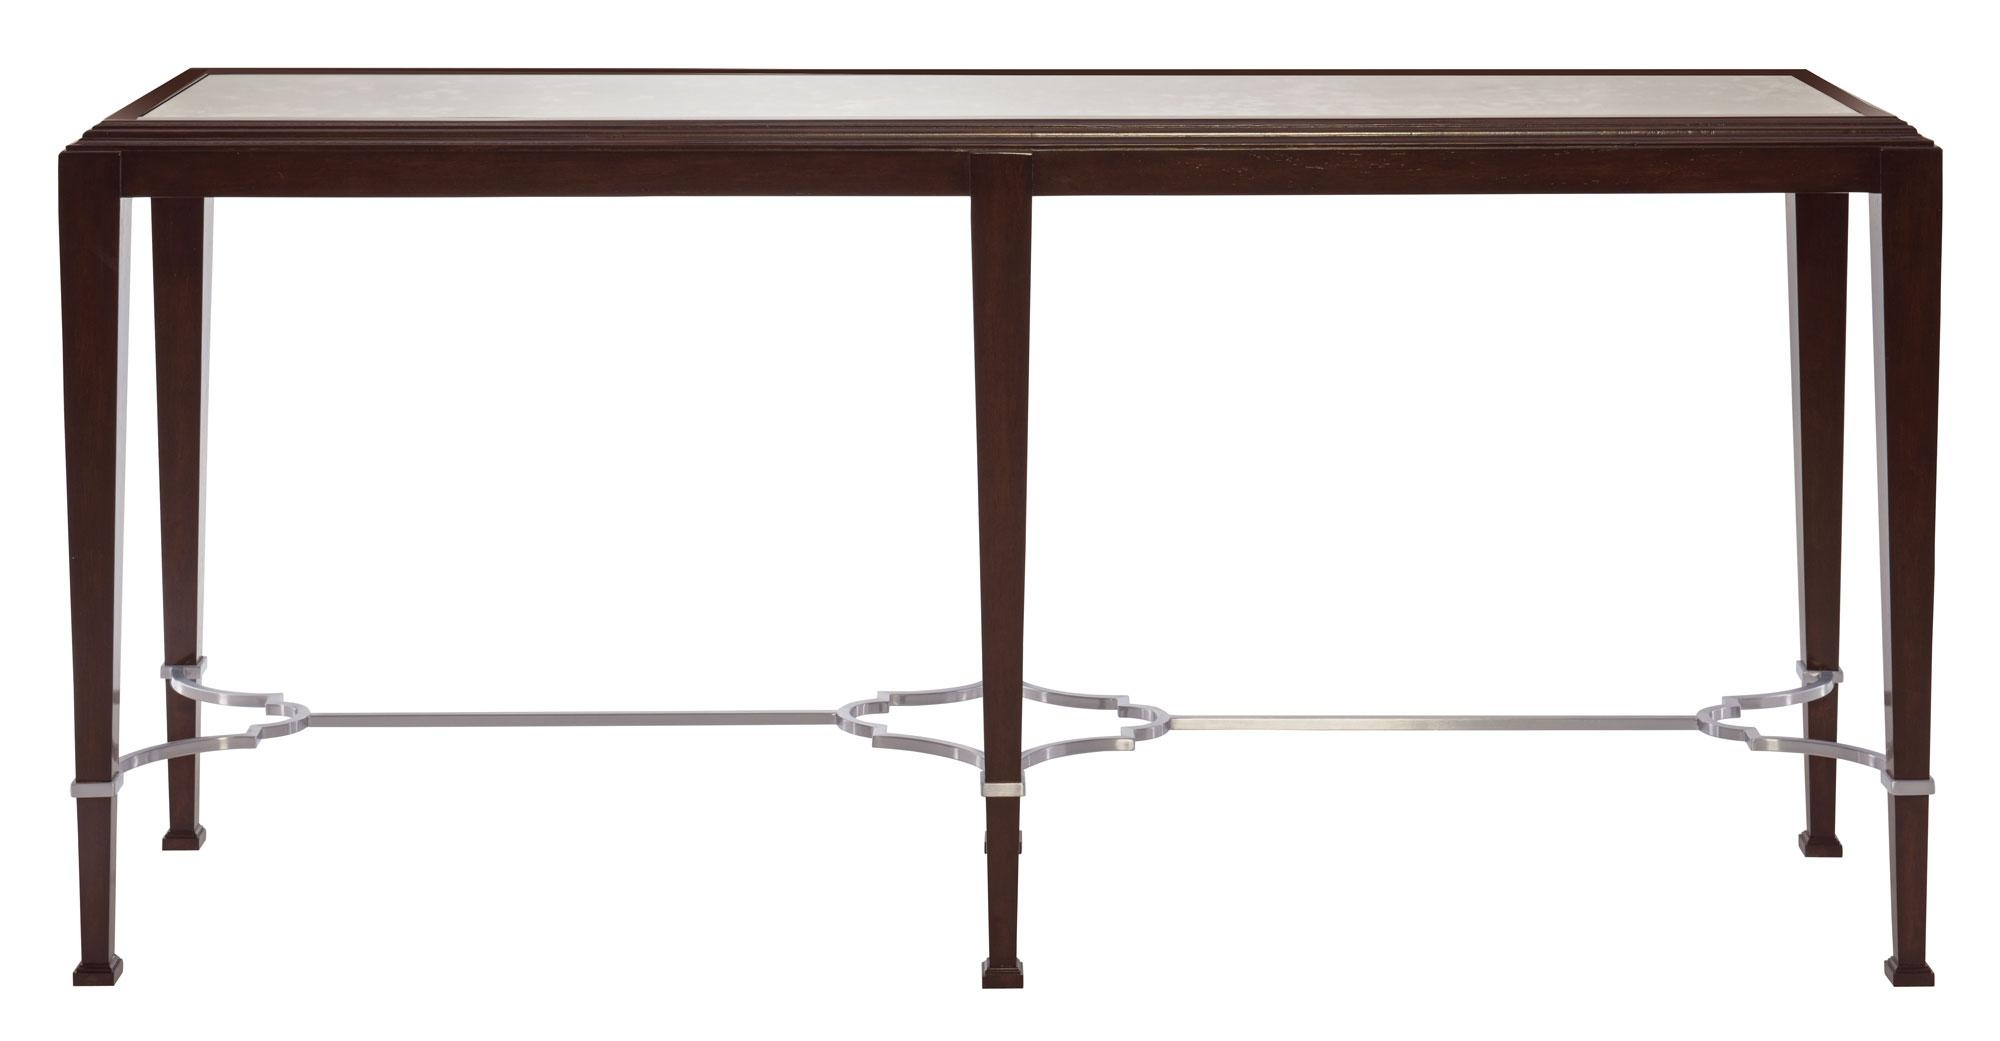 Console Tables | Bernhardt Within Bernhardt Console Tables (Image 17 of 20)